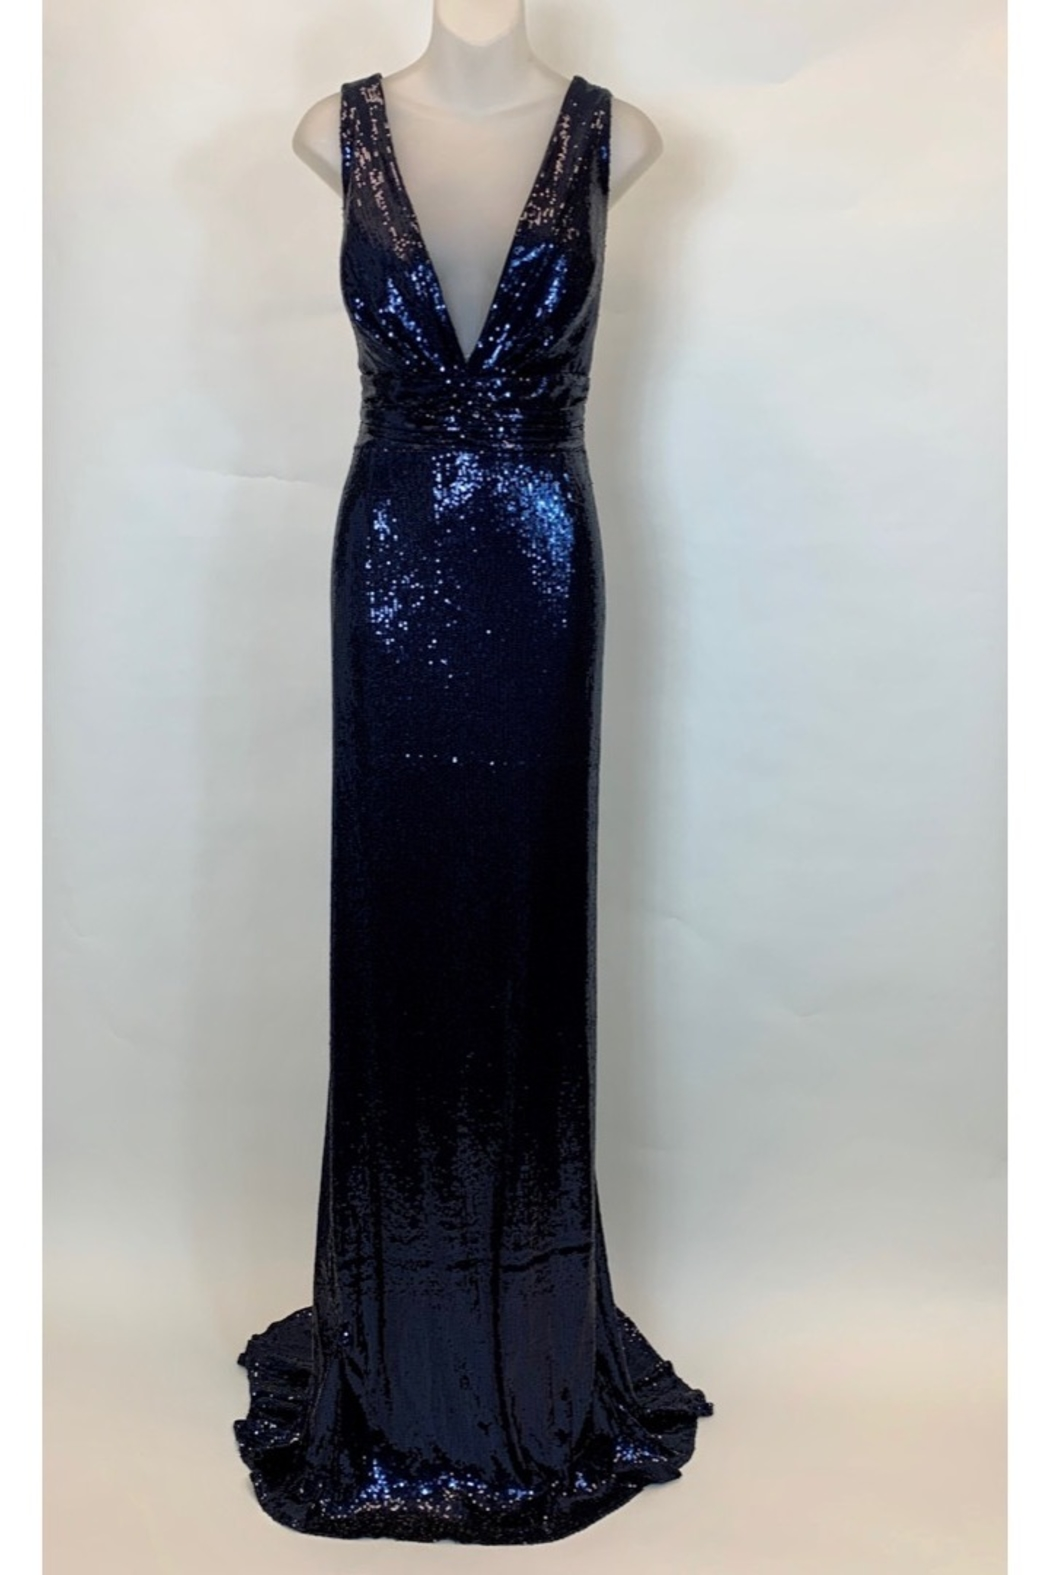 JUAN CARLOS PINERA ALL SEQUIN BLACK GOWN - Front Cropped Image